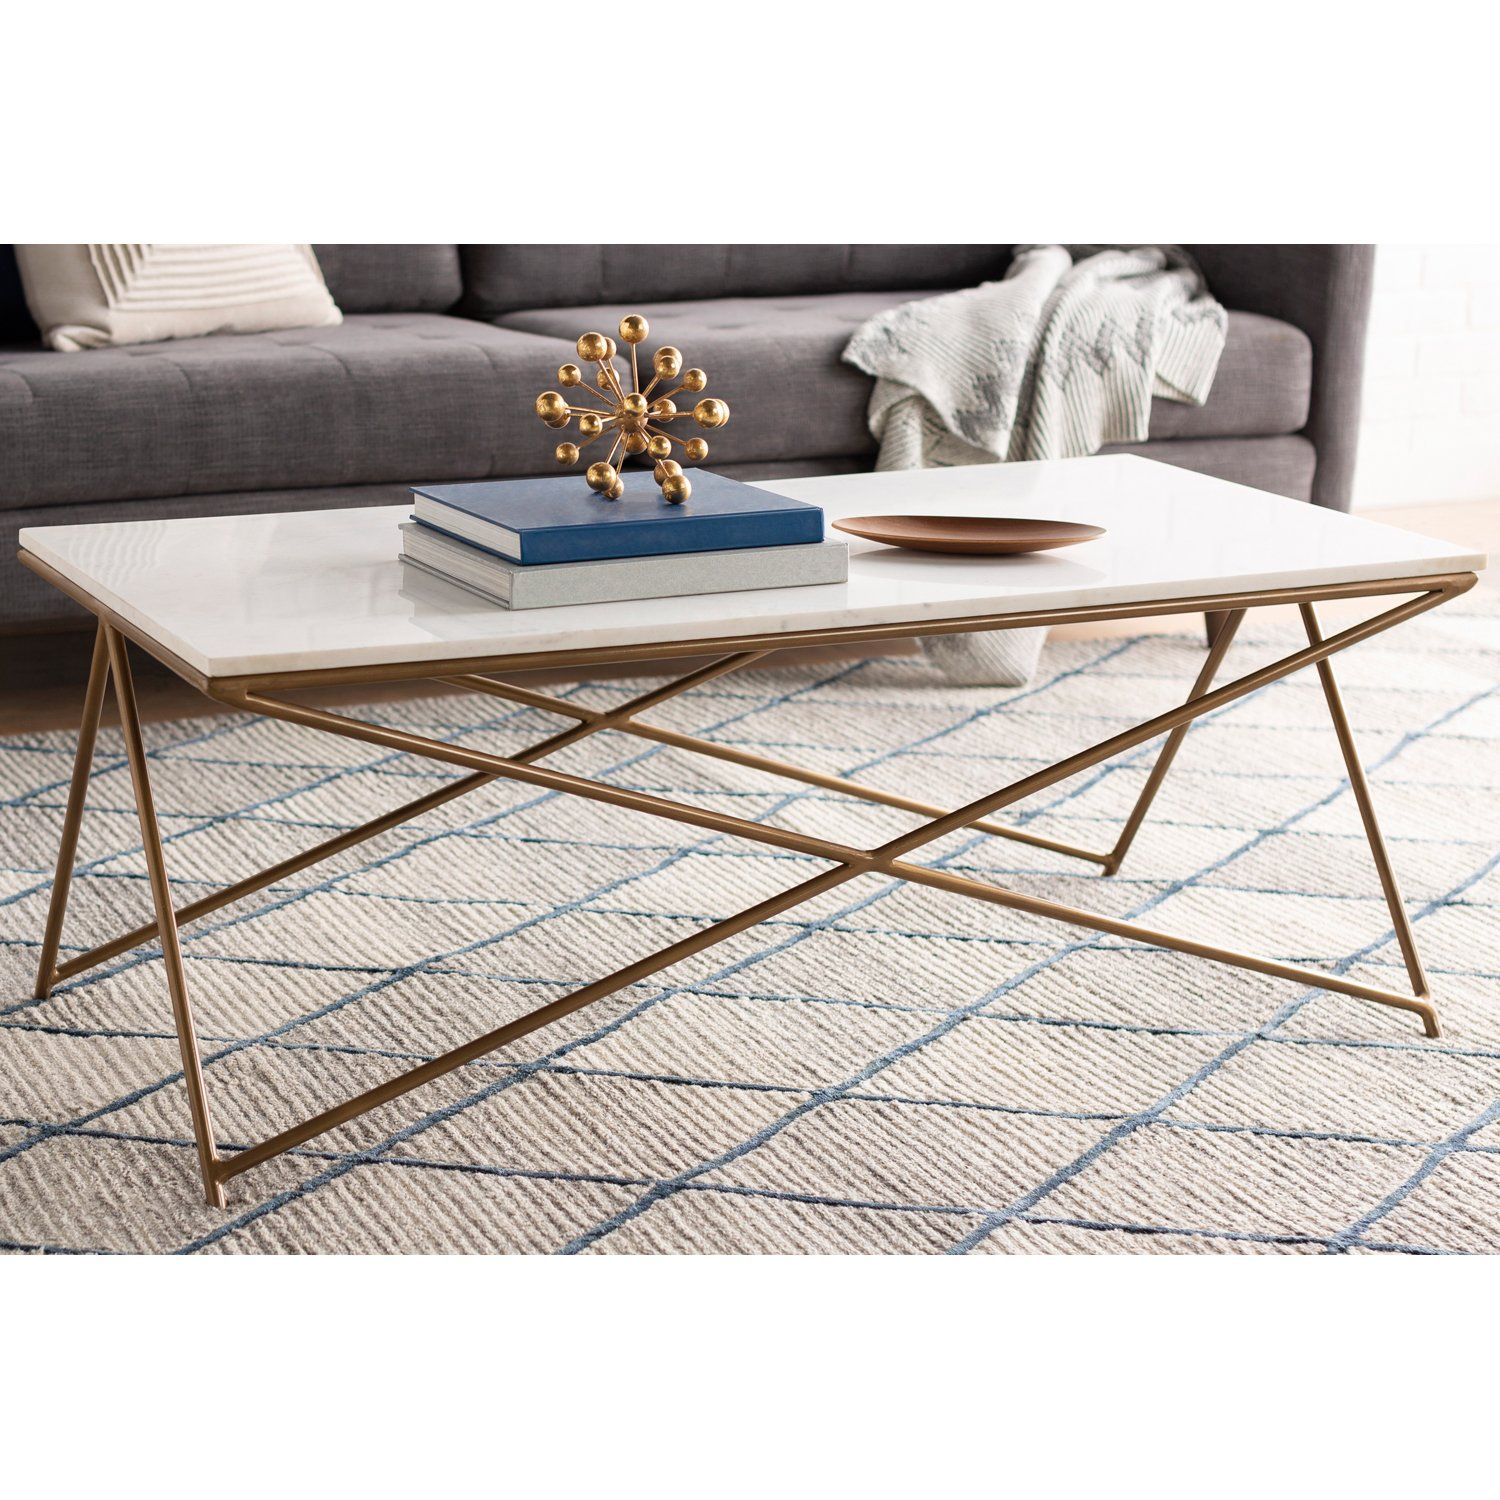 Largo Coffee Table In 2021 Coffee Table Center Table Marble Coffee Table [ 1500 x 1500 Pixel ]